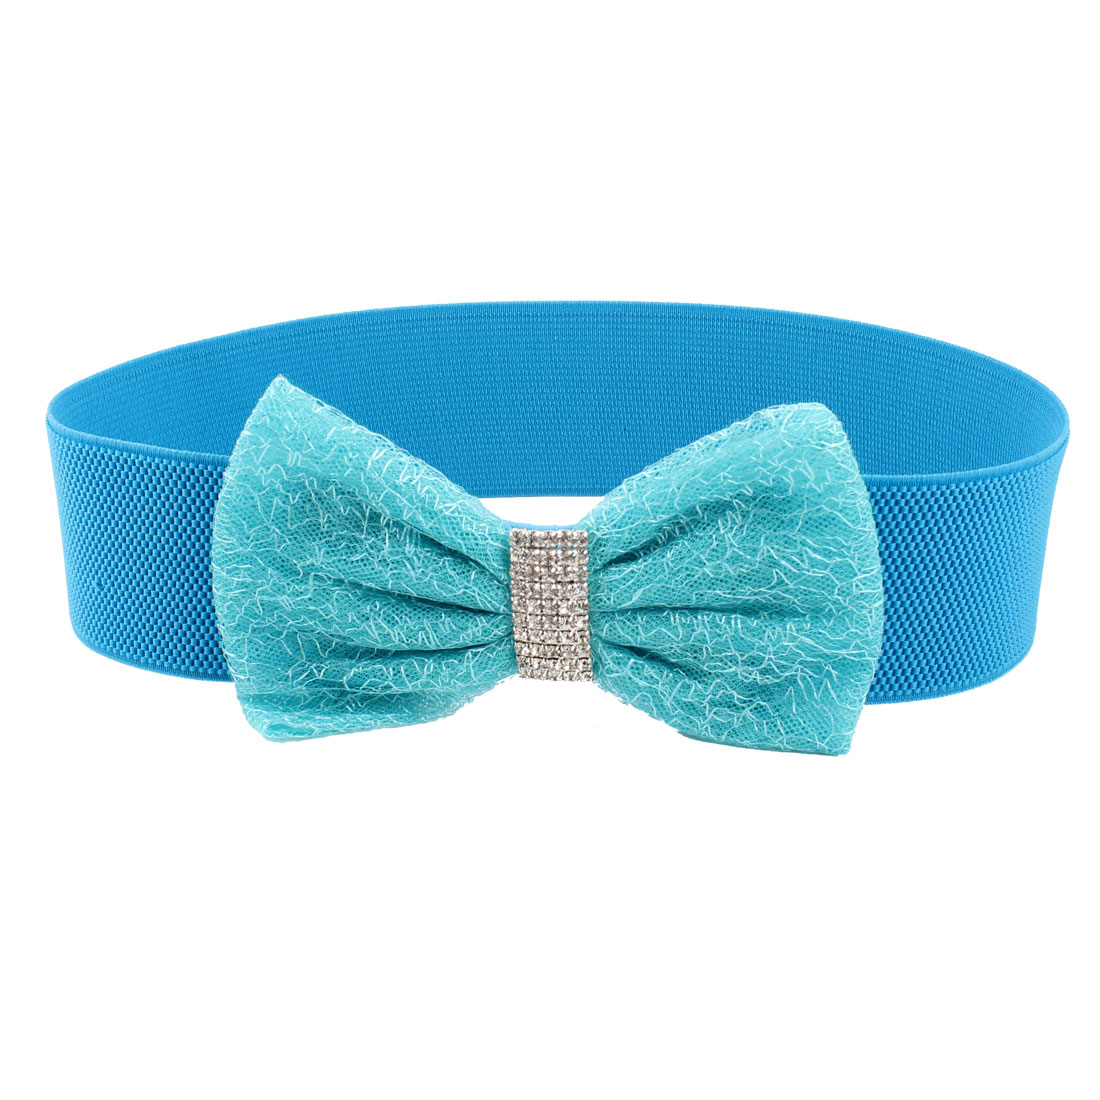 Bowknot Shiny Rhinestone 5.5cm Wide Stretchy Waist Belt Blue for Ladies